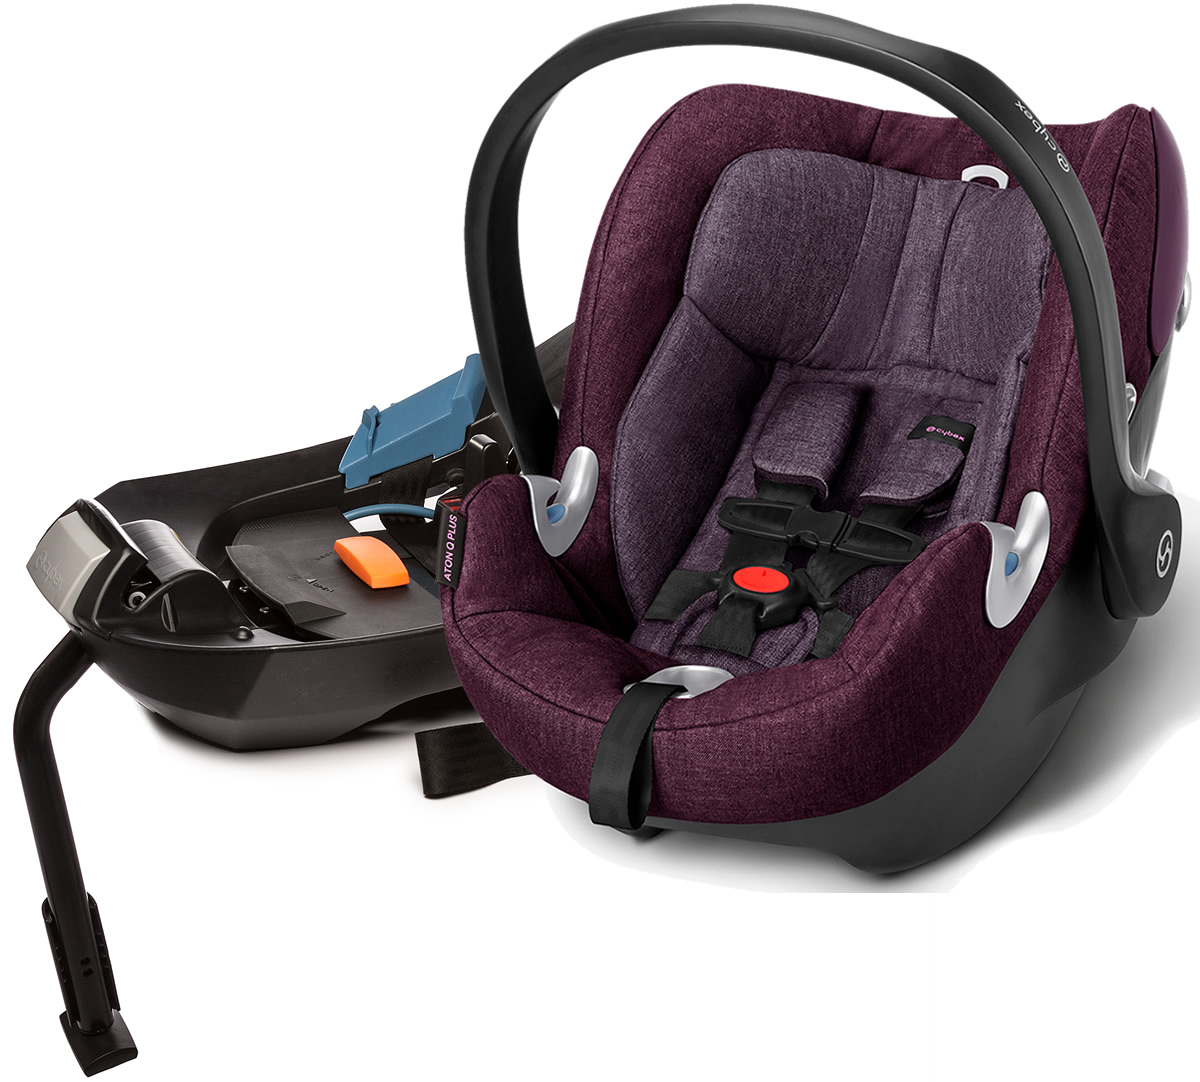 Avocent Aton Q Plus Infant Car Seat - Grape Juice